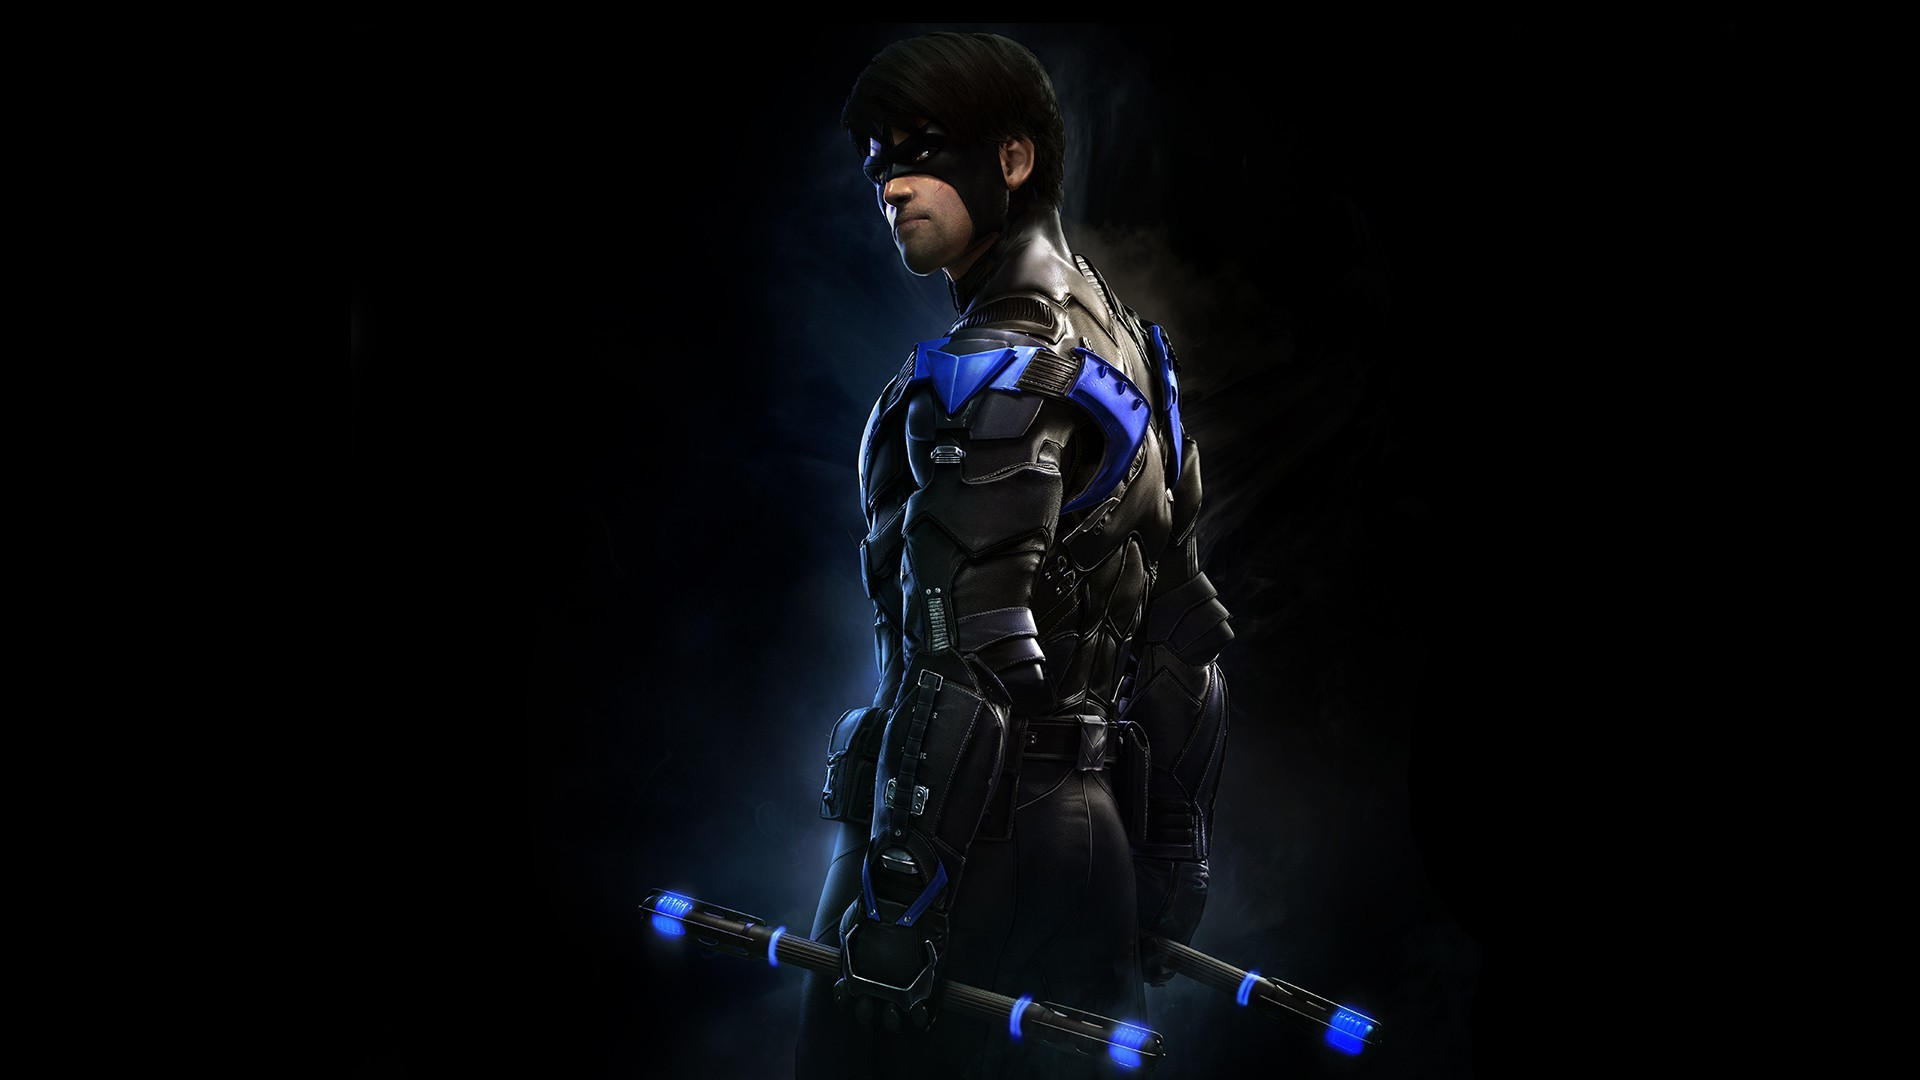 Res: 1920x1080, Blue Nightwing Wallpapers For Iphone